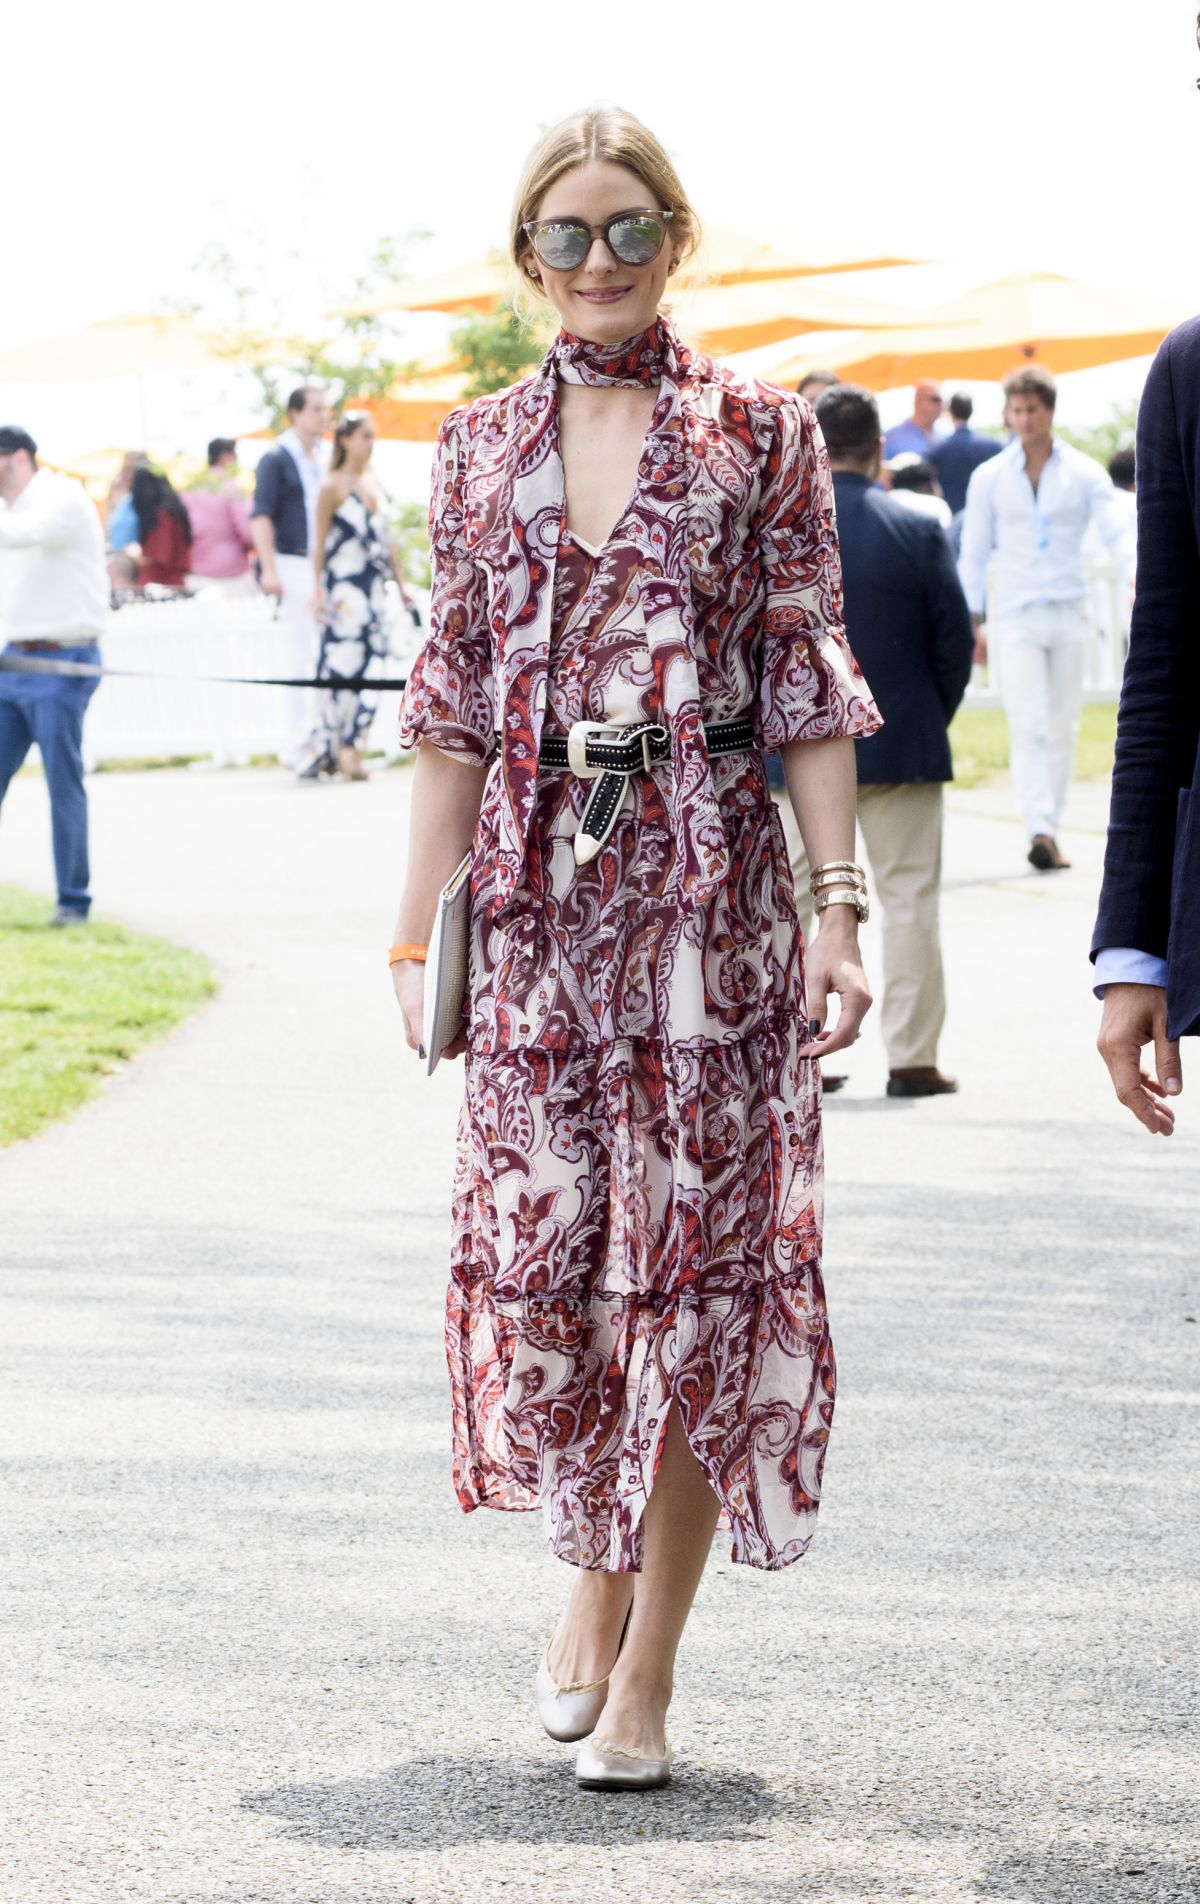 Style maven, Olivia Palermo, is bohemian chic in a ruffled, layered dress.